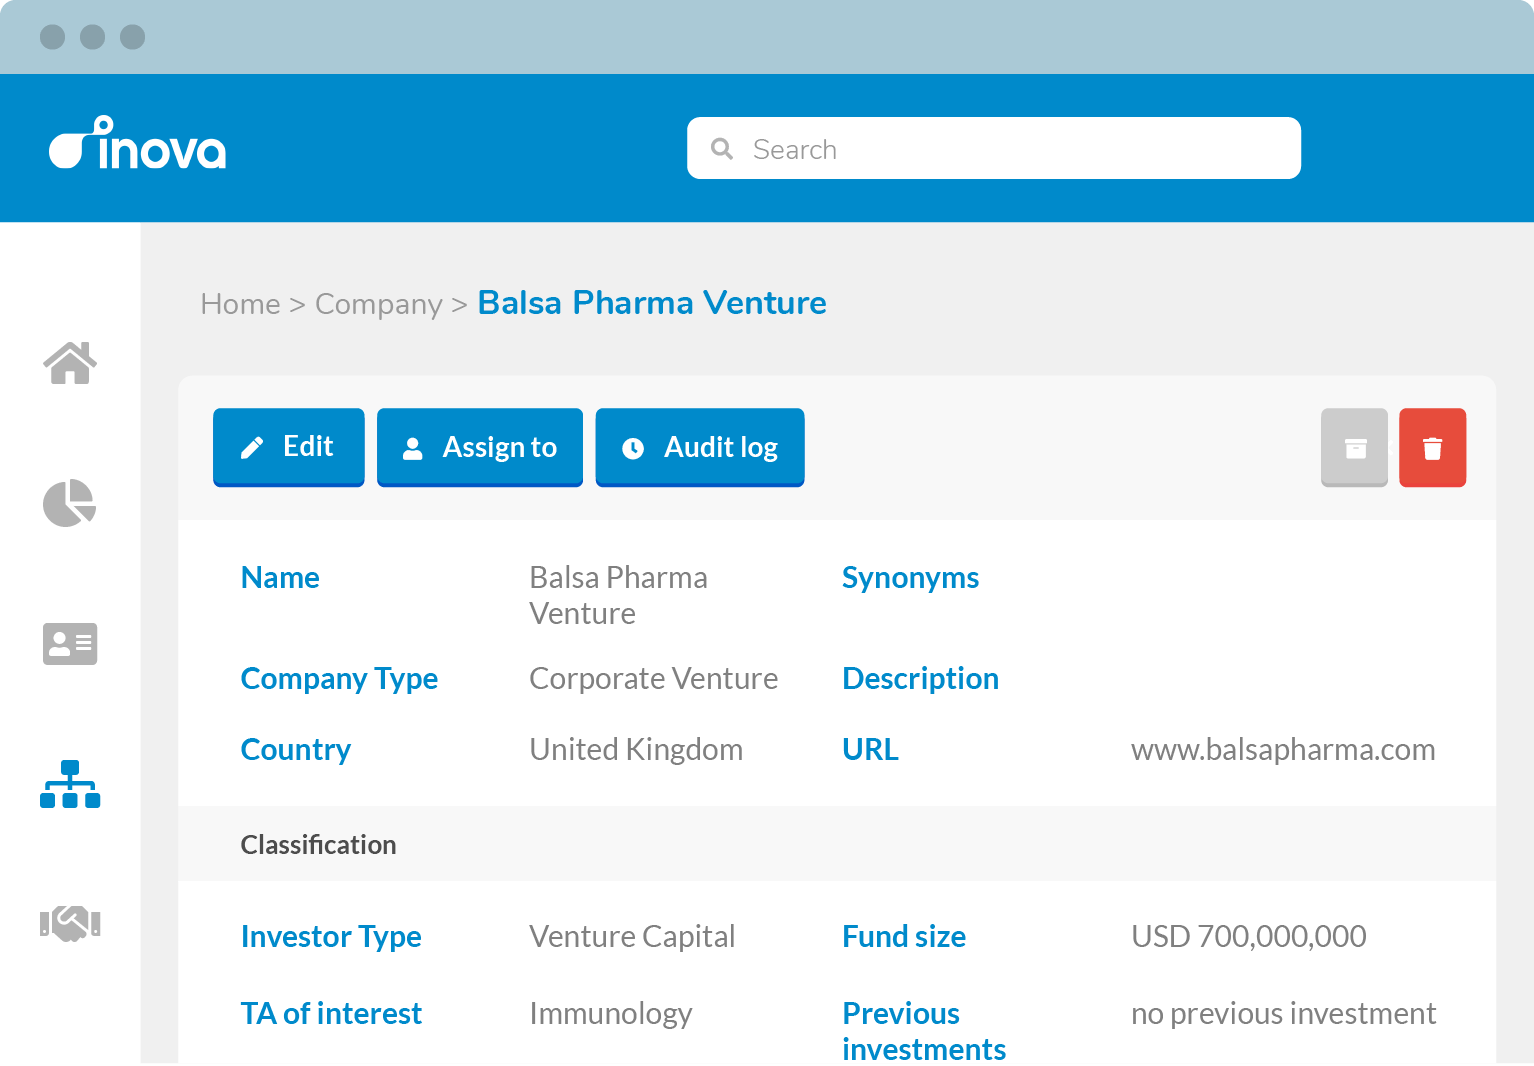 All your information in one place